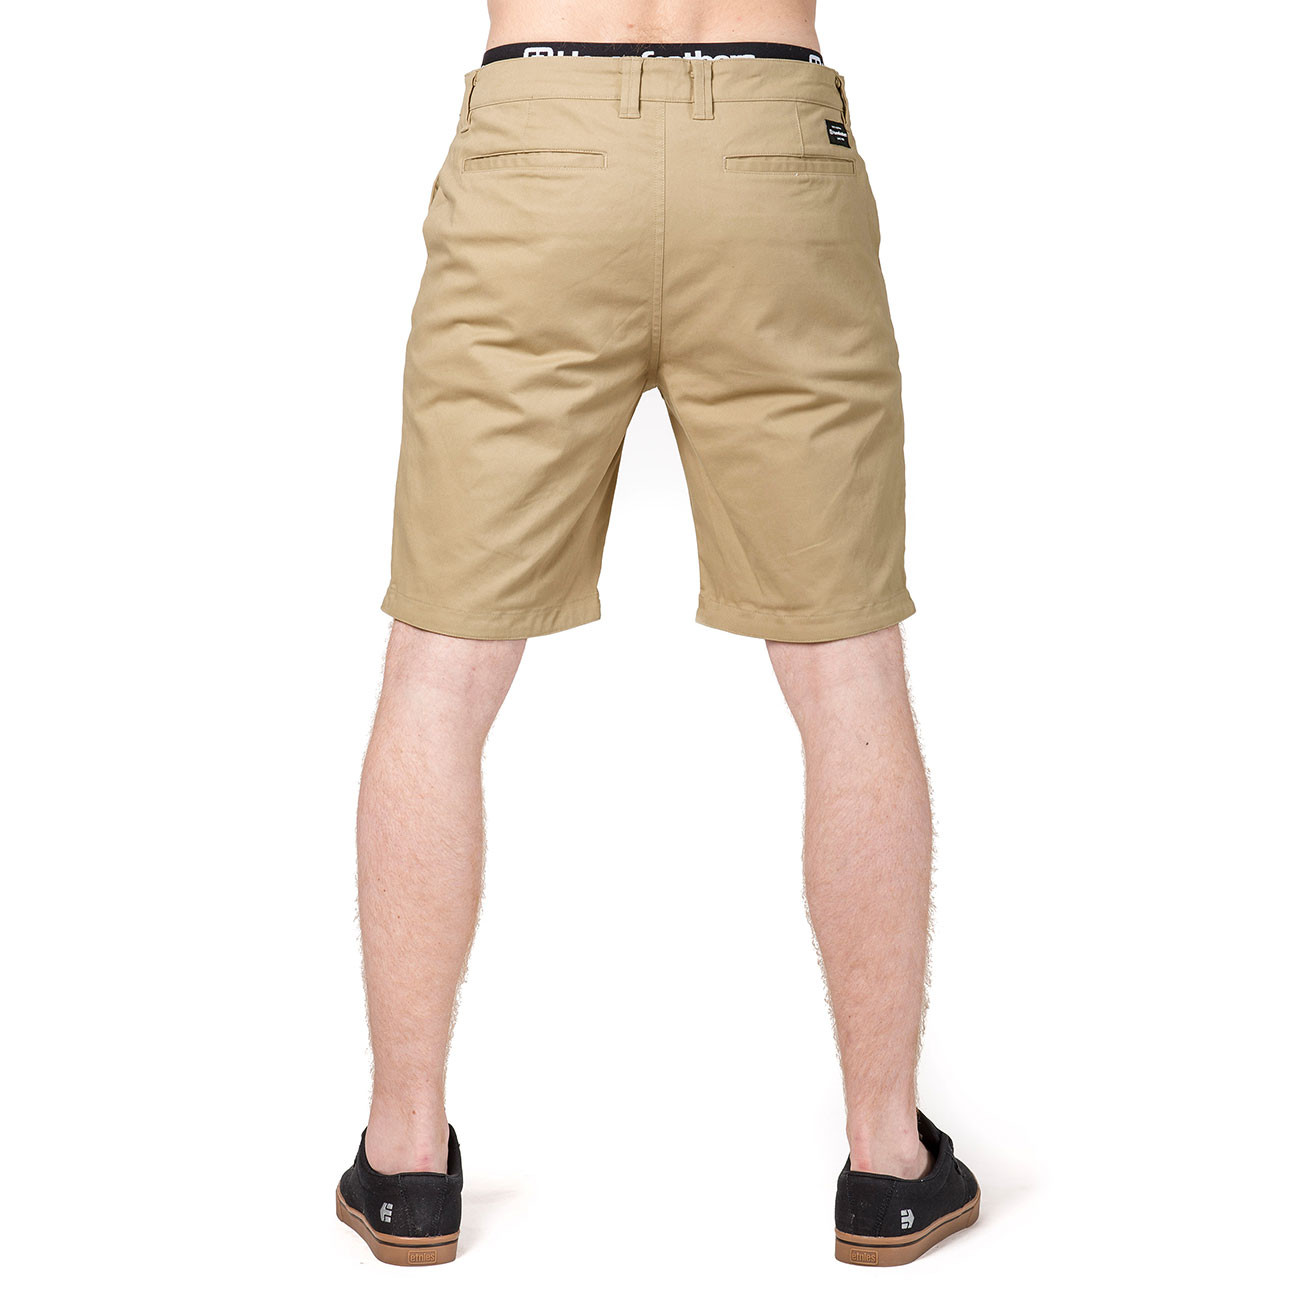 Kraťasy Horsefeathers Bowie Shorts